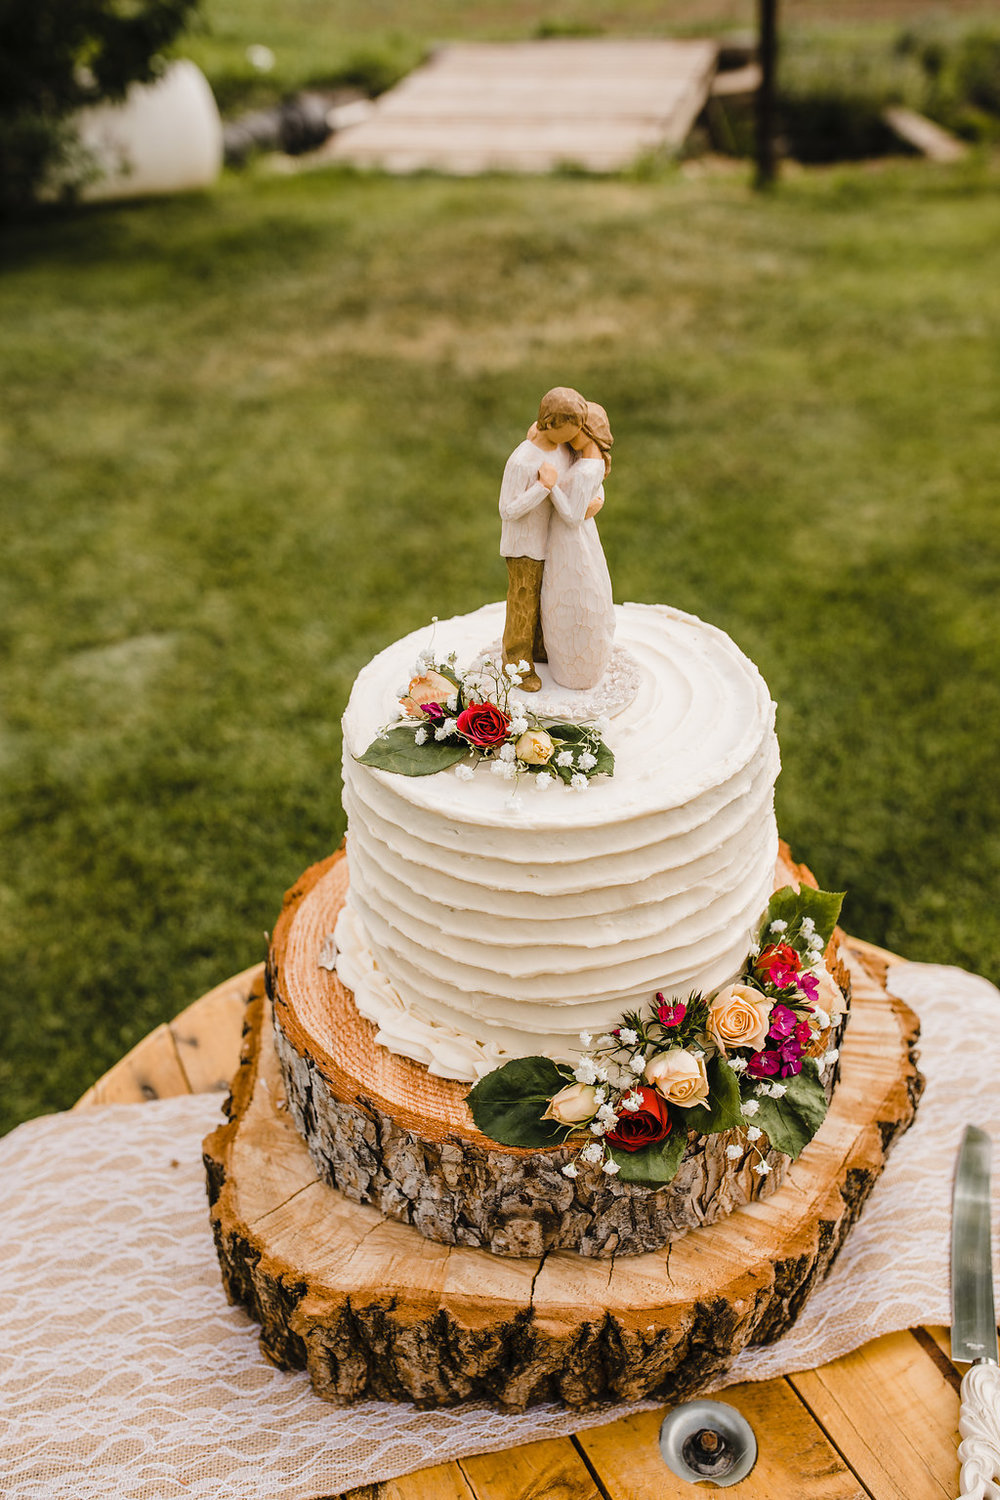 professional wedding photos reception cake bohemian wedding rustic wedding cake calli richards wedding photographer in brigham city utah